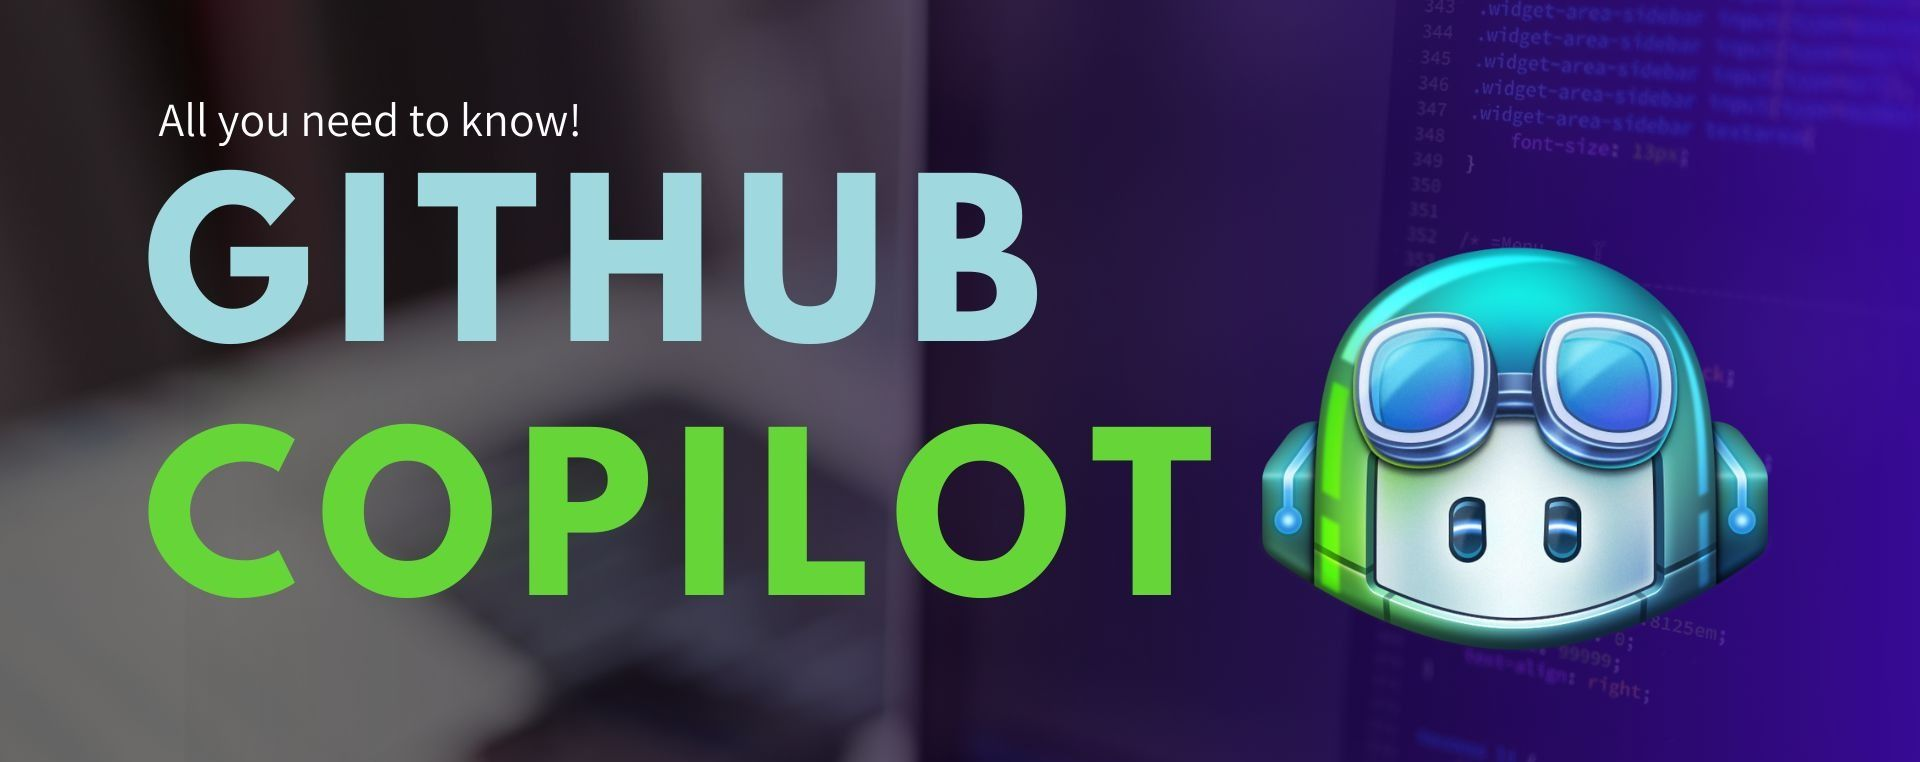 /everything-you-need-to-know-about-github-copilot-yg5p37rc feature image